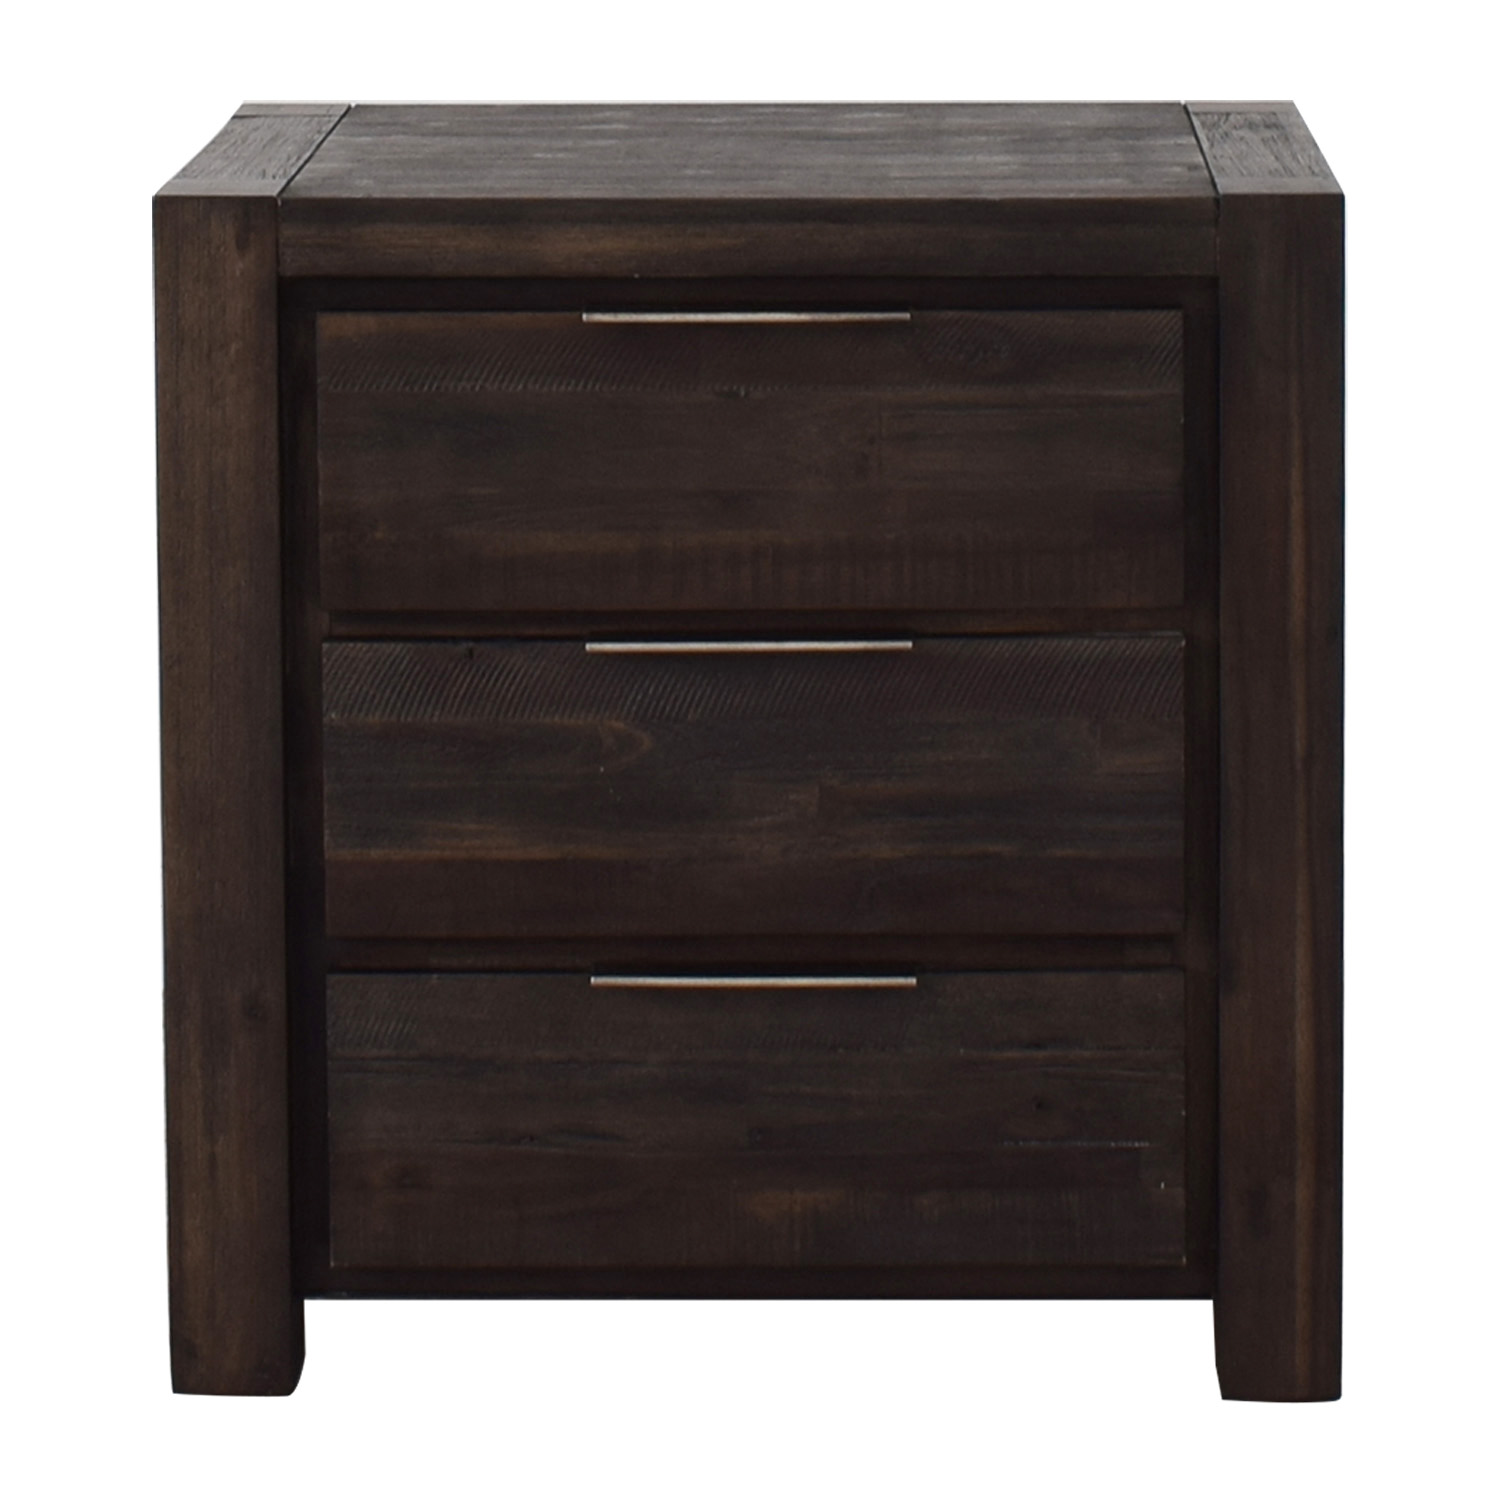 Modus Modus Savana Three-Drawer Nightstand nj